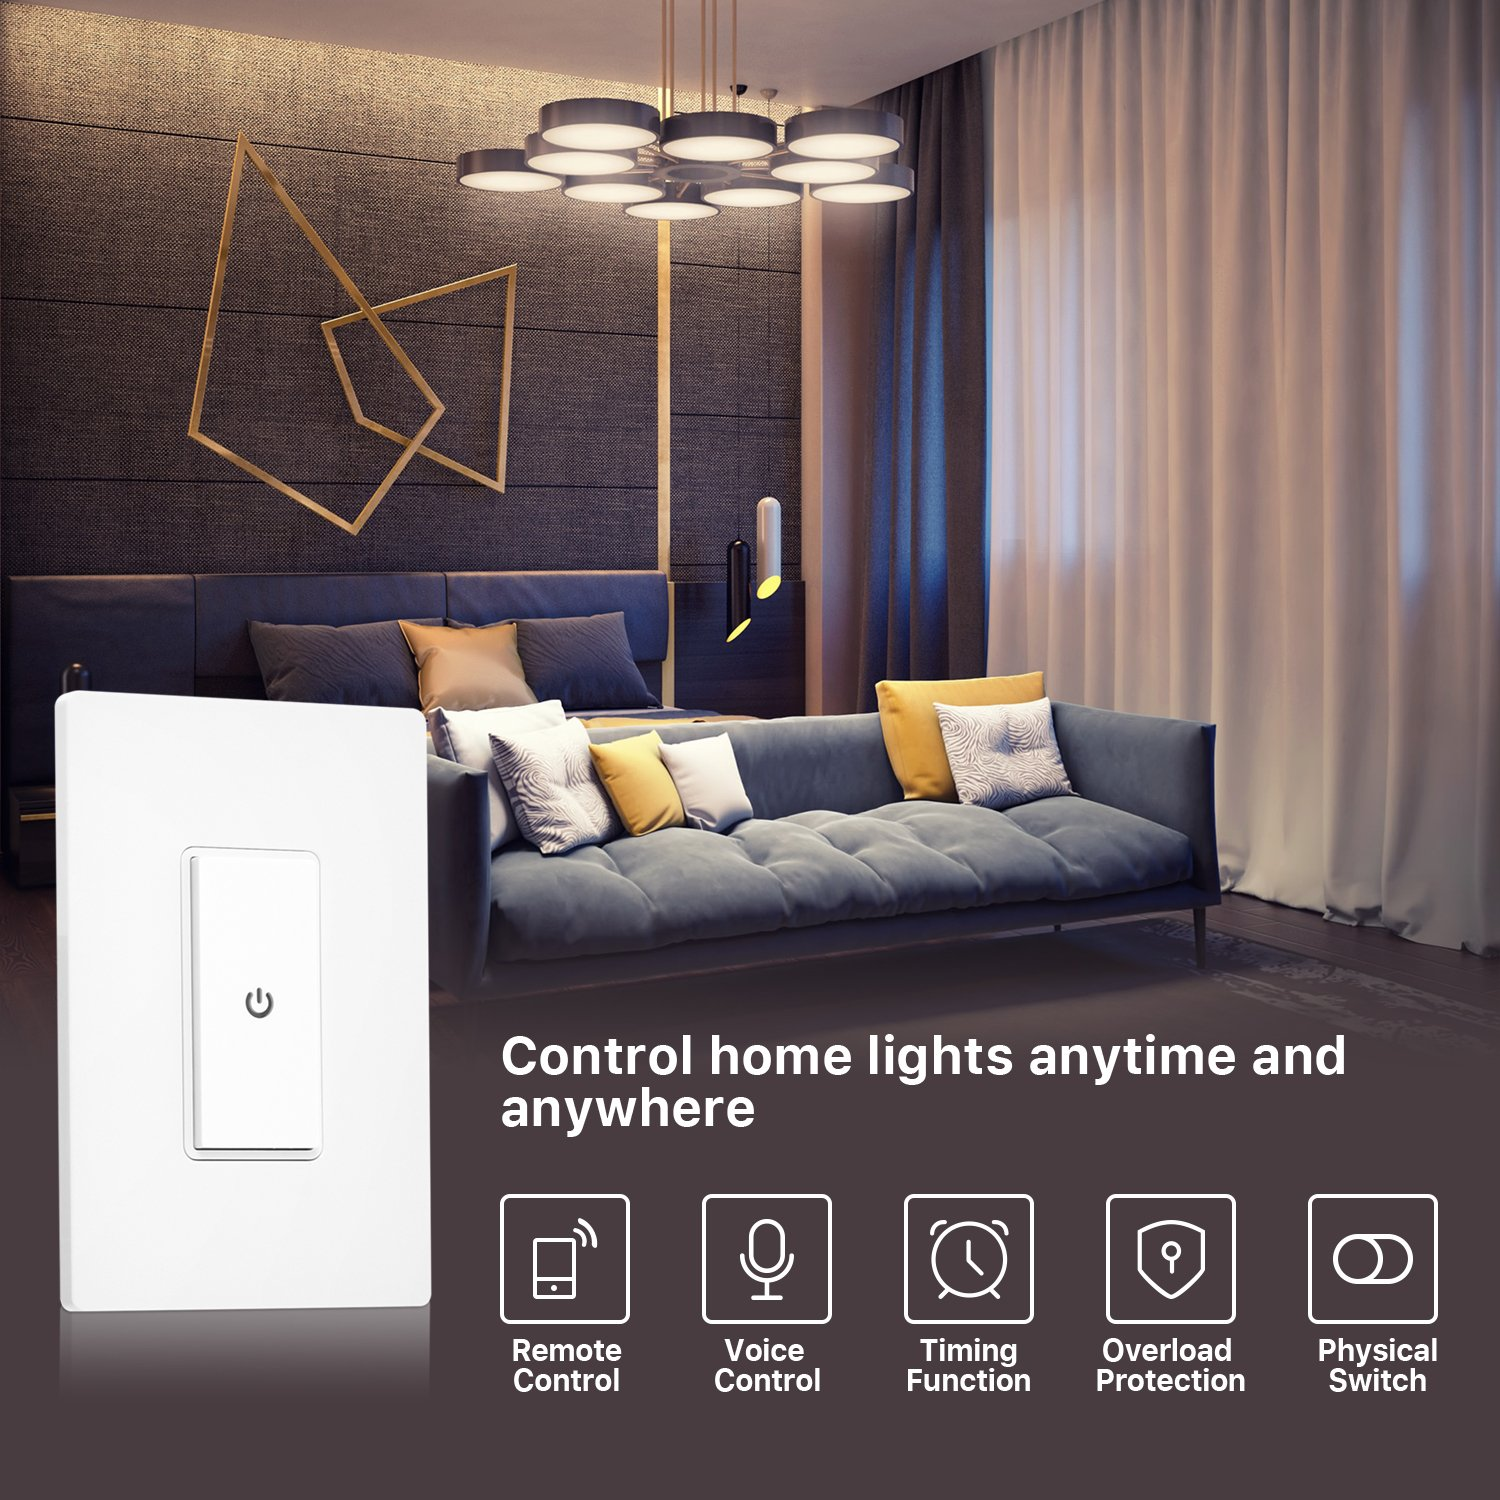 Ankuoo REC Wi-Fi Light Switch with Push Notification, Works with Alexa, New Firmware with AP Mode, NOT Plug & Play, Limited DIY Required, White